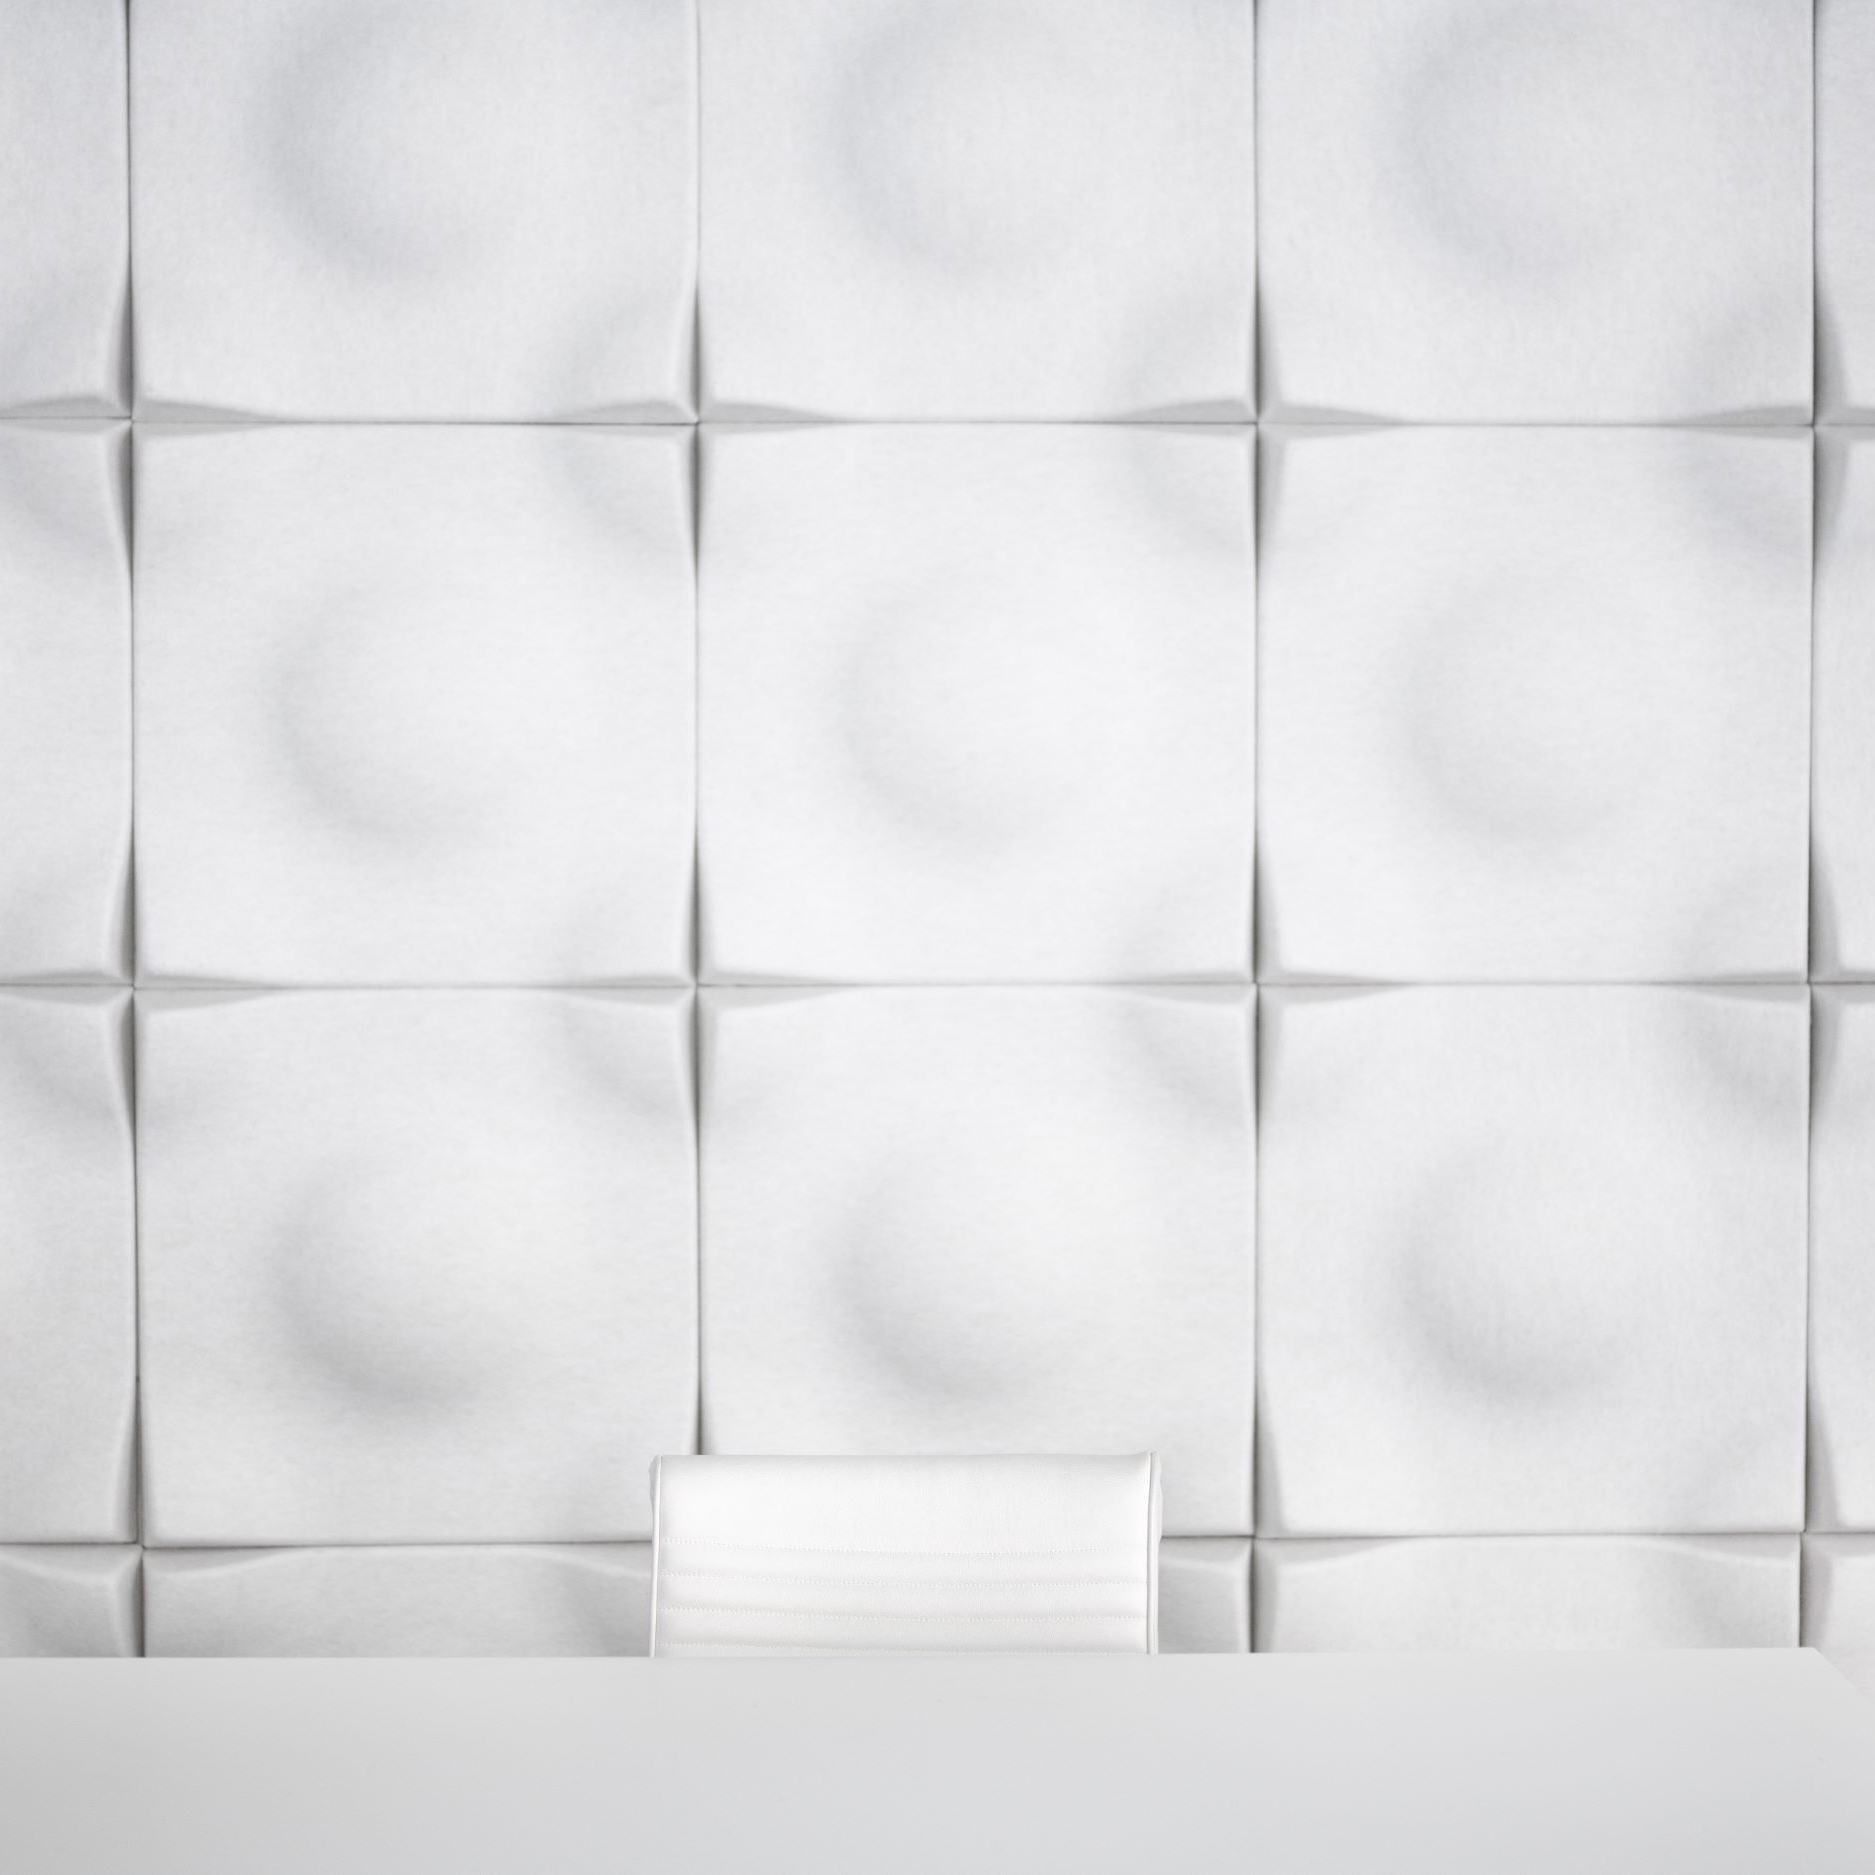 SOUNDWAVE-SWELL-Acoustic-panels-Teppo-Asikainen-offecct-59008-11-6060.jpg